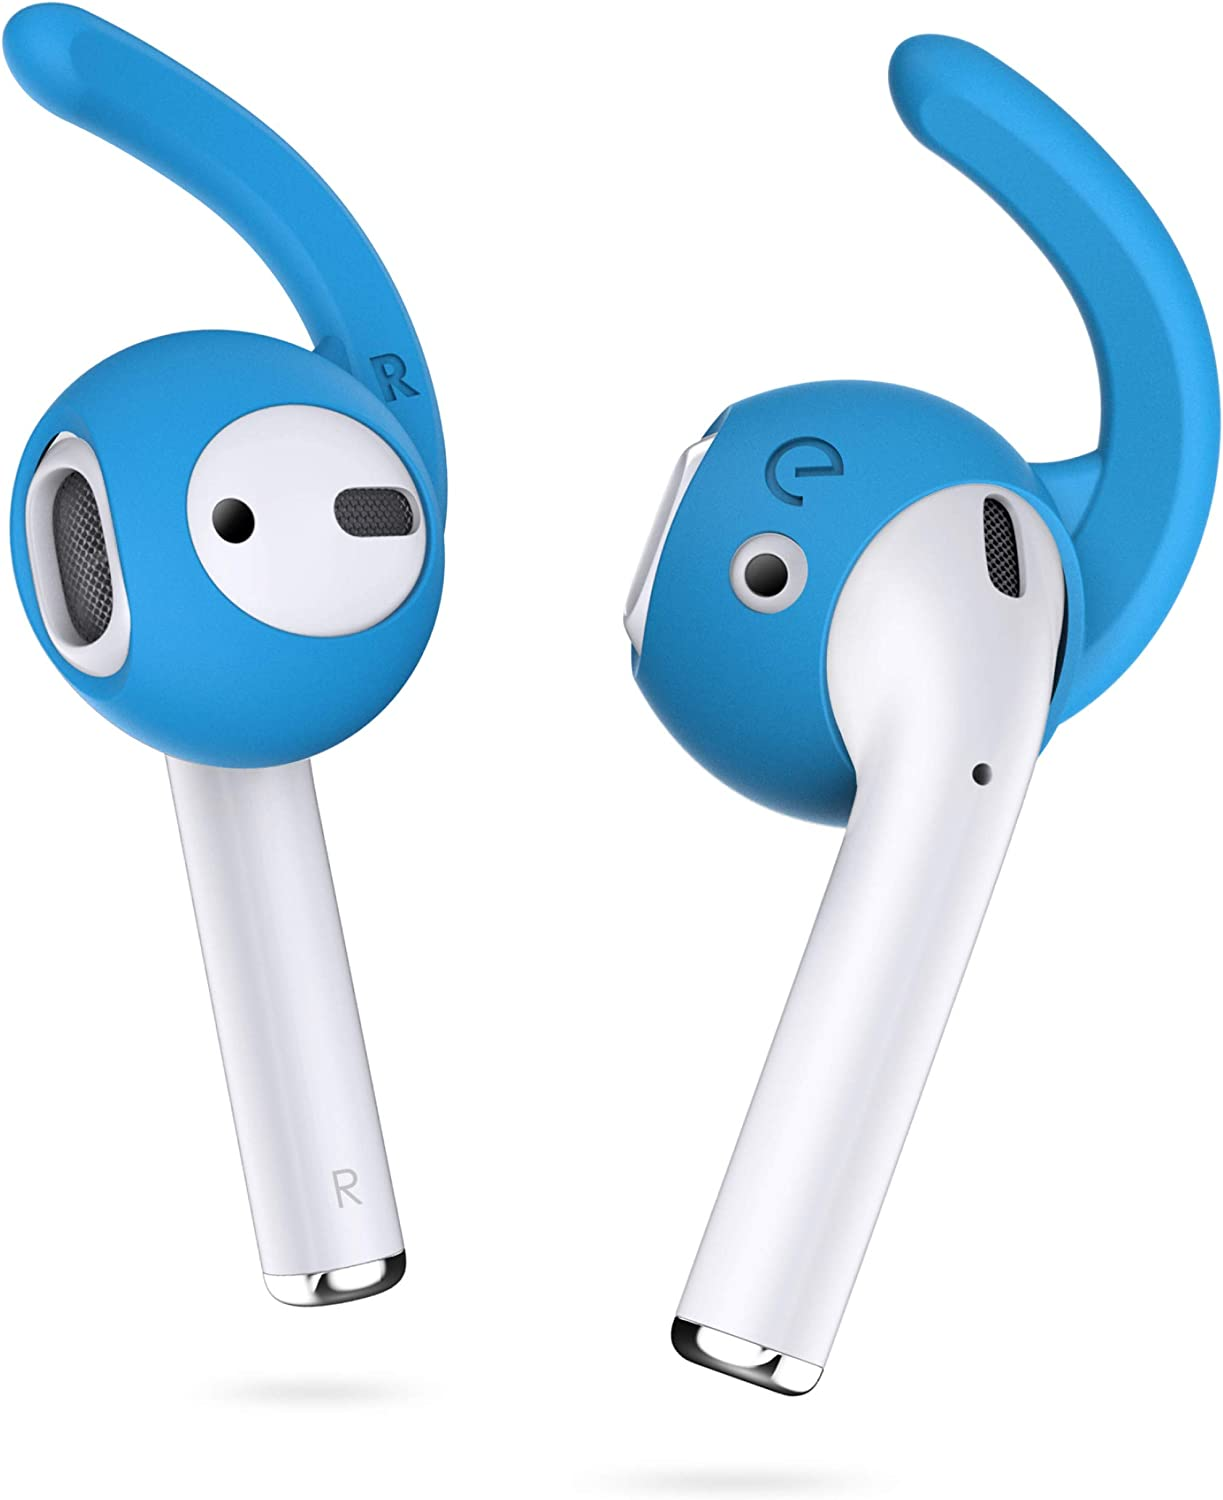 EarBuddyz 2.0 Ear Hooks and Covers Accessories Compatible with Apple AirPods 1 & 2 or EarPods Headphones/Earphones/Earbuds (3 Pairs) (Sky Blue)